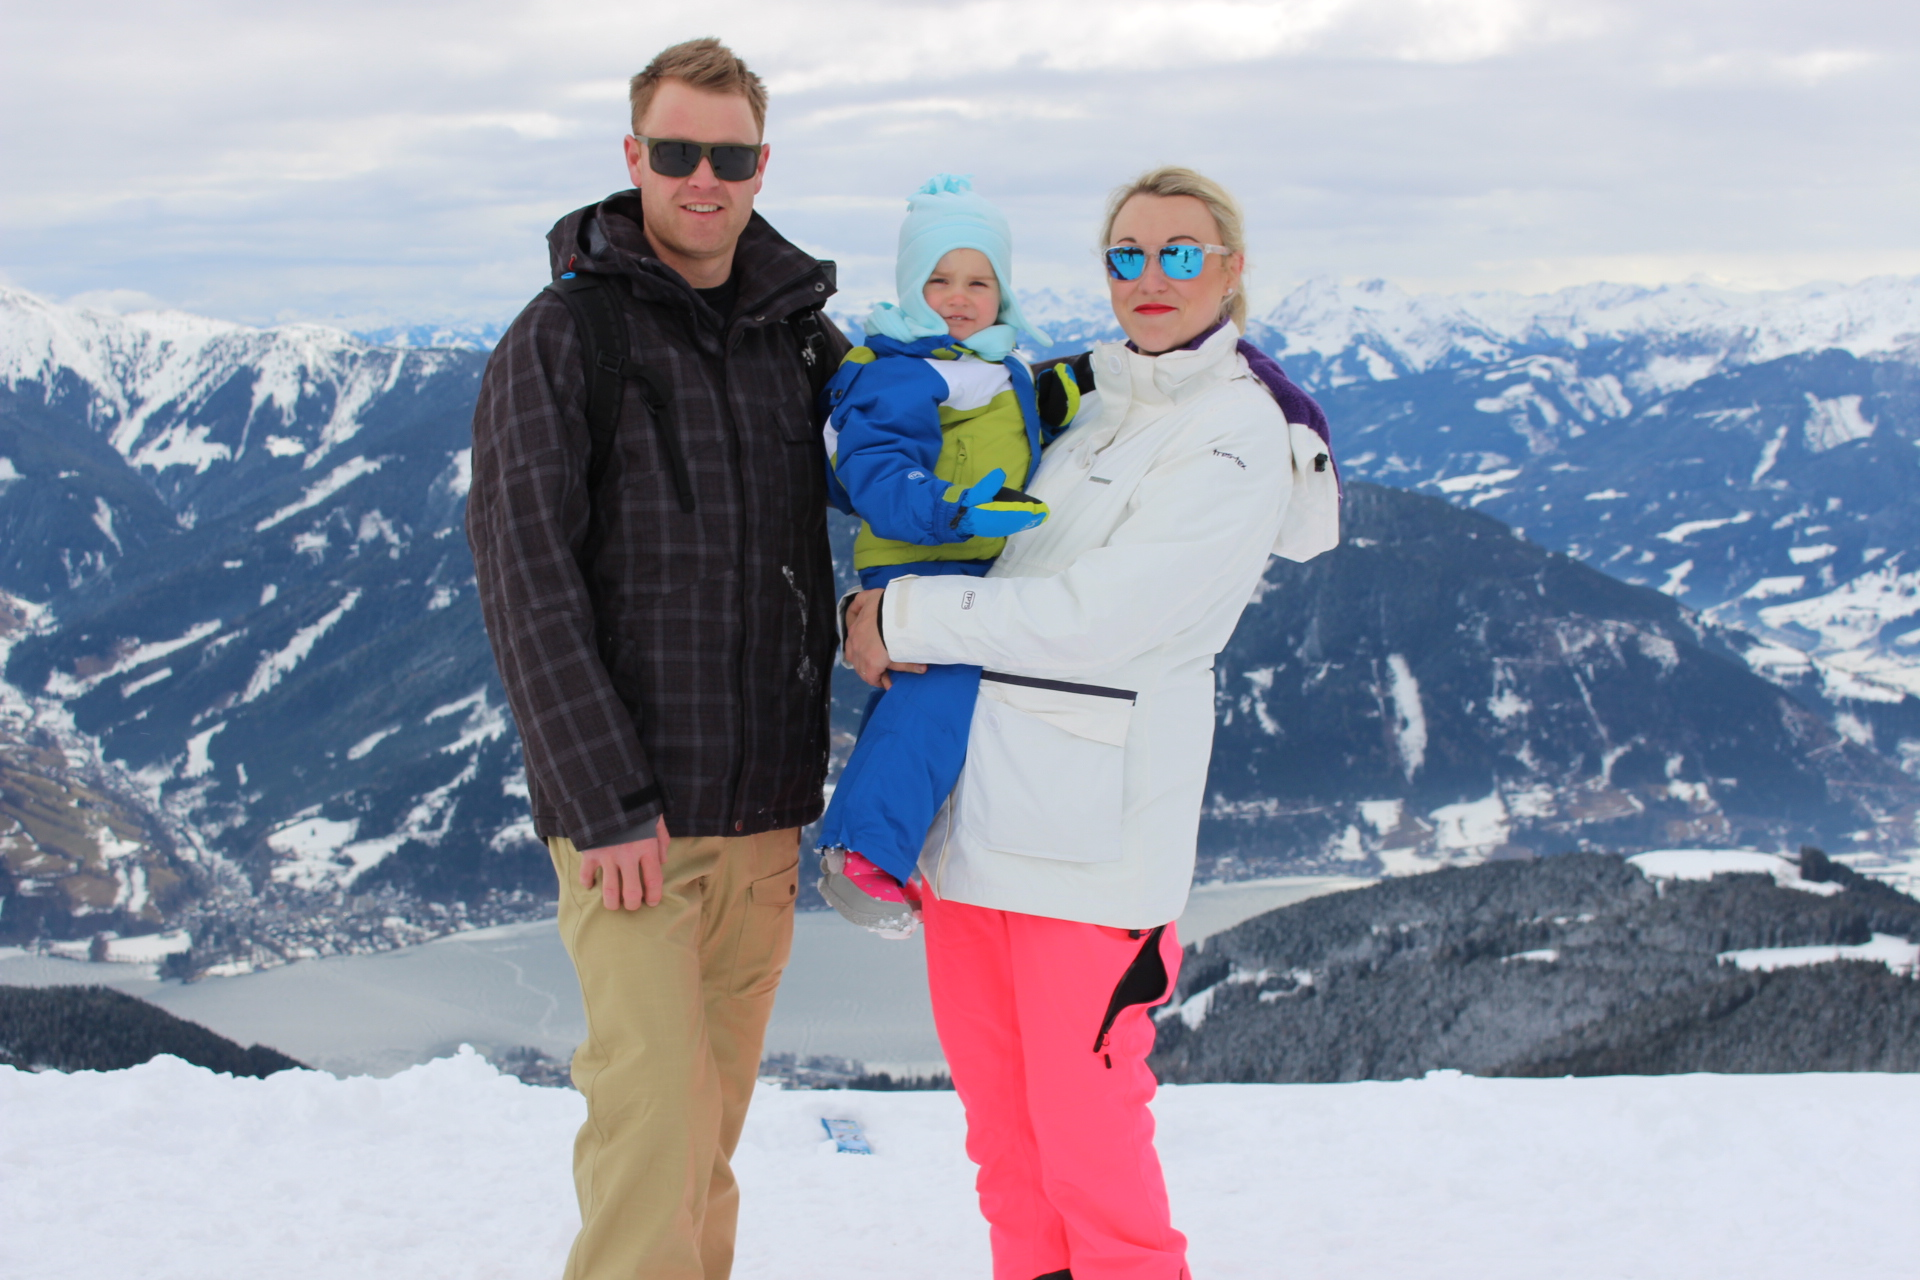 A winter trip to Austria with kids